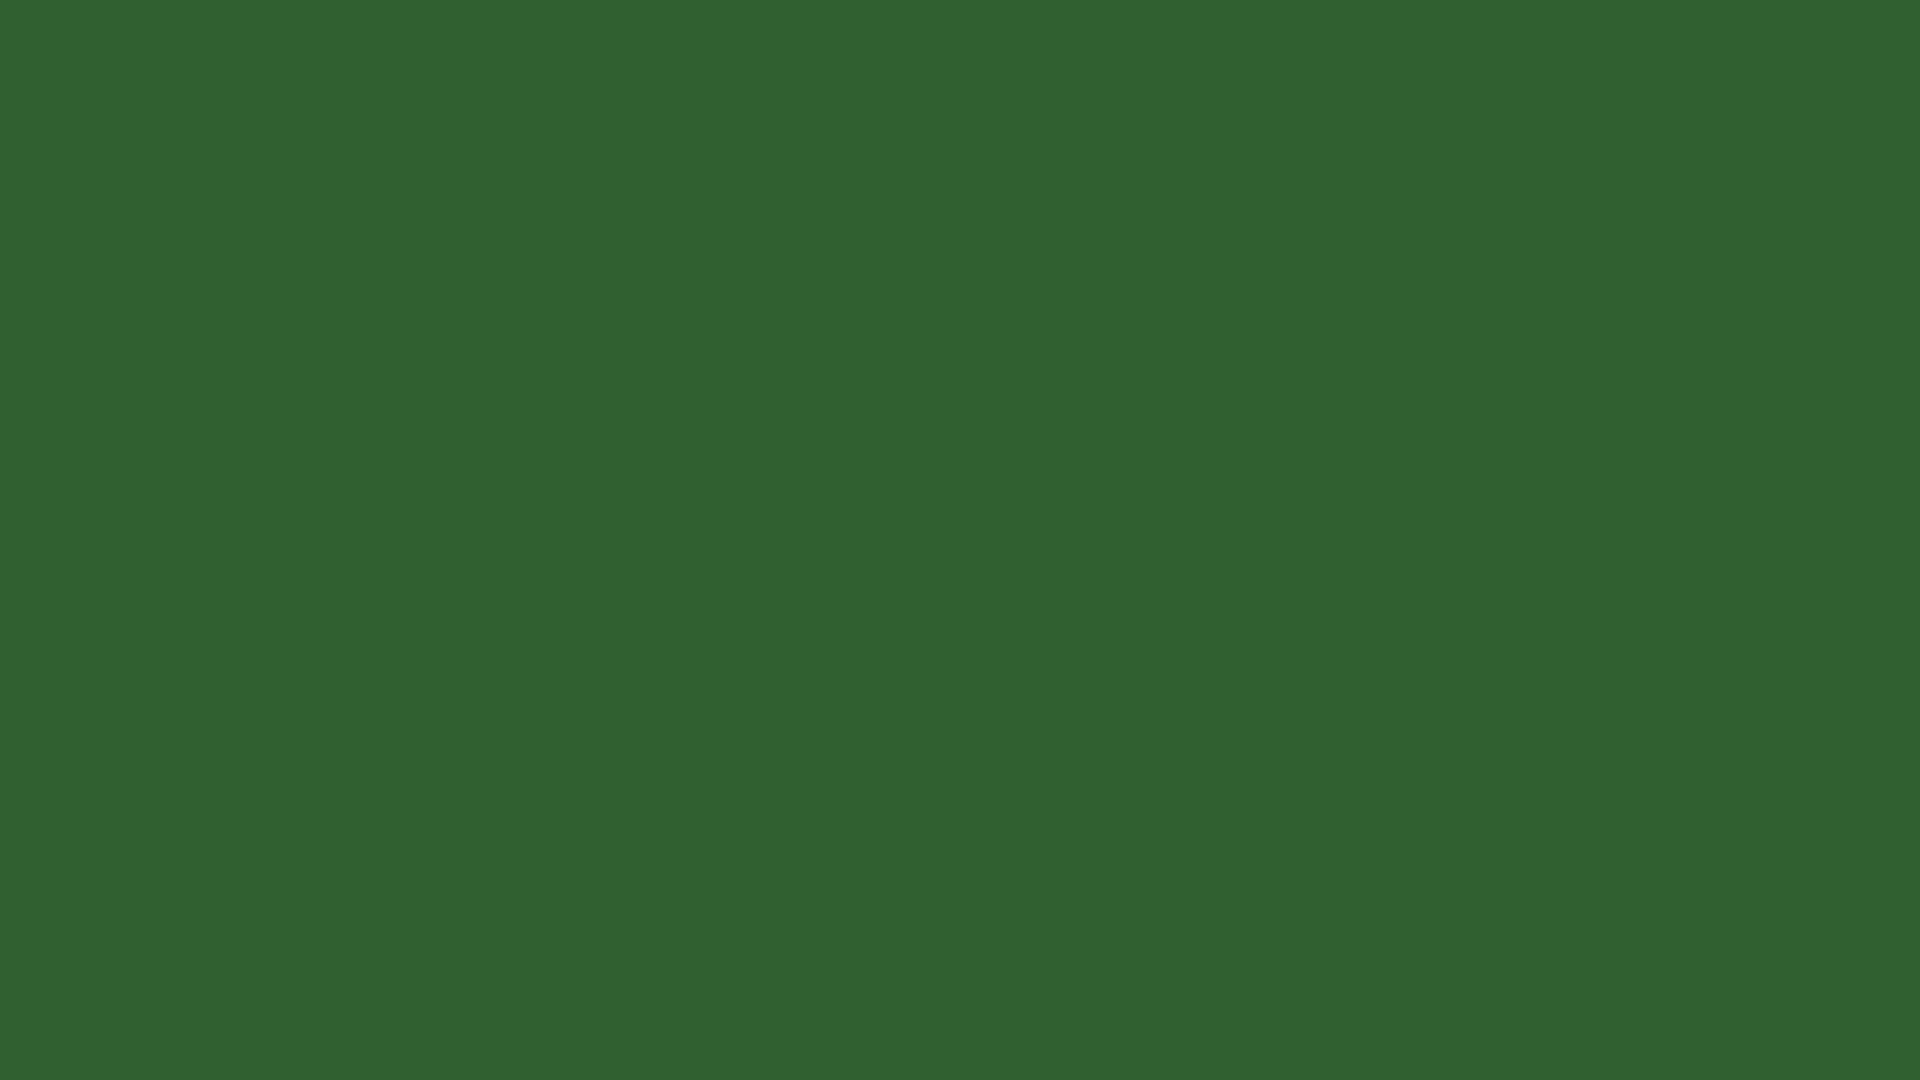 1920x1080 Mughal Green Solid Color Background